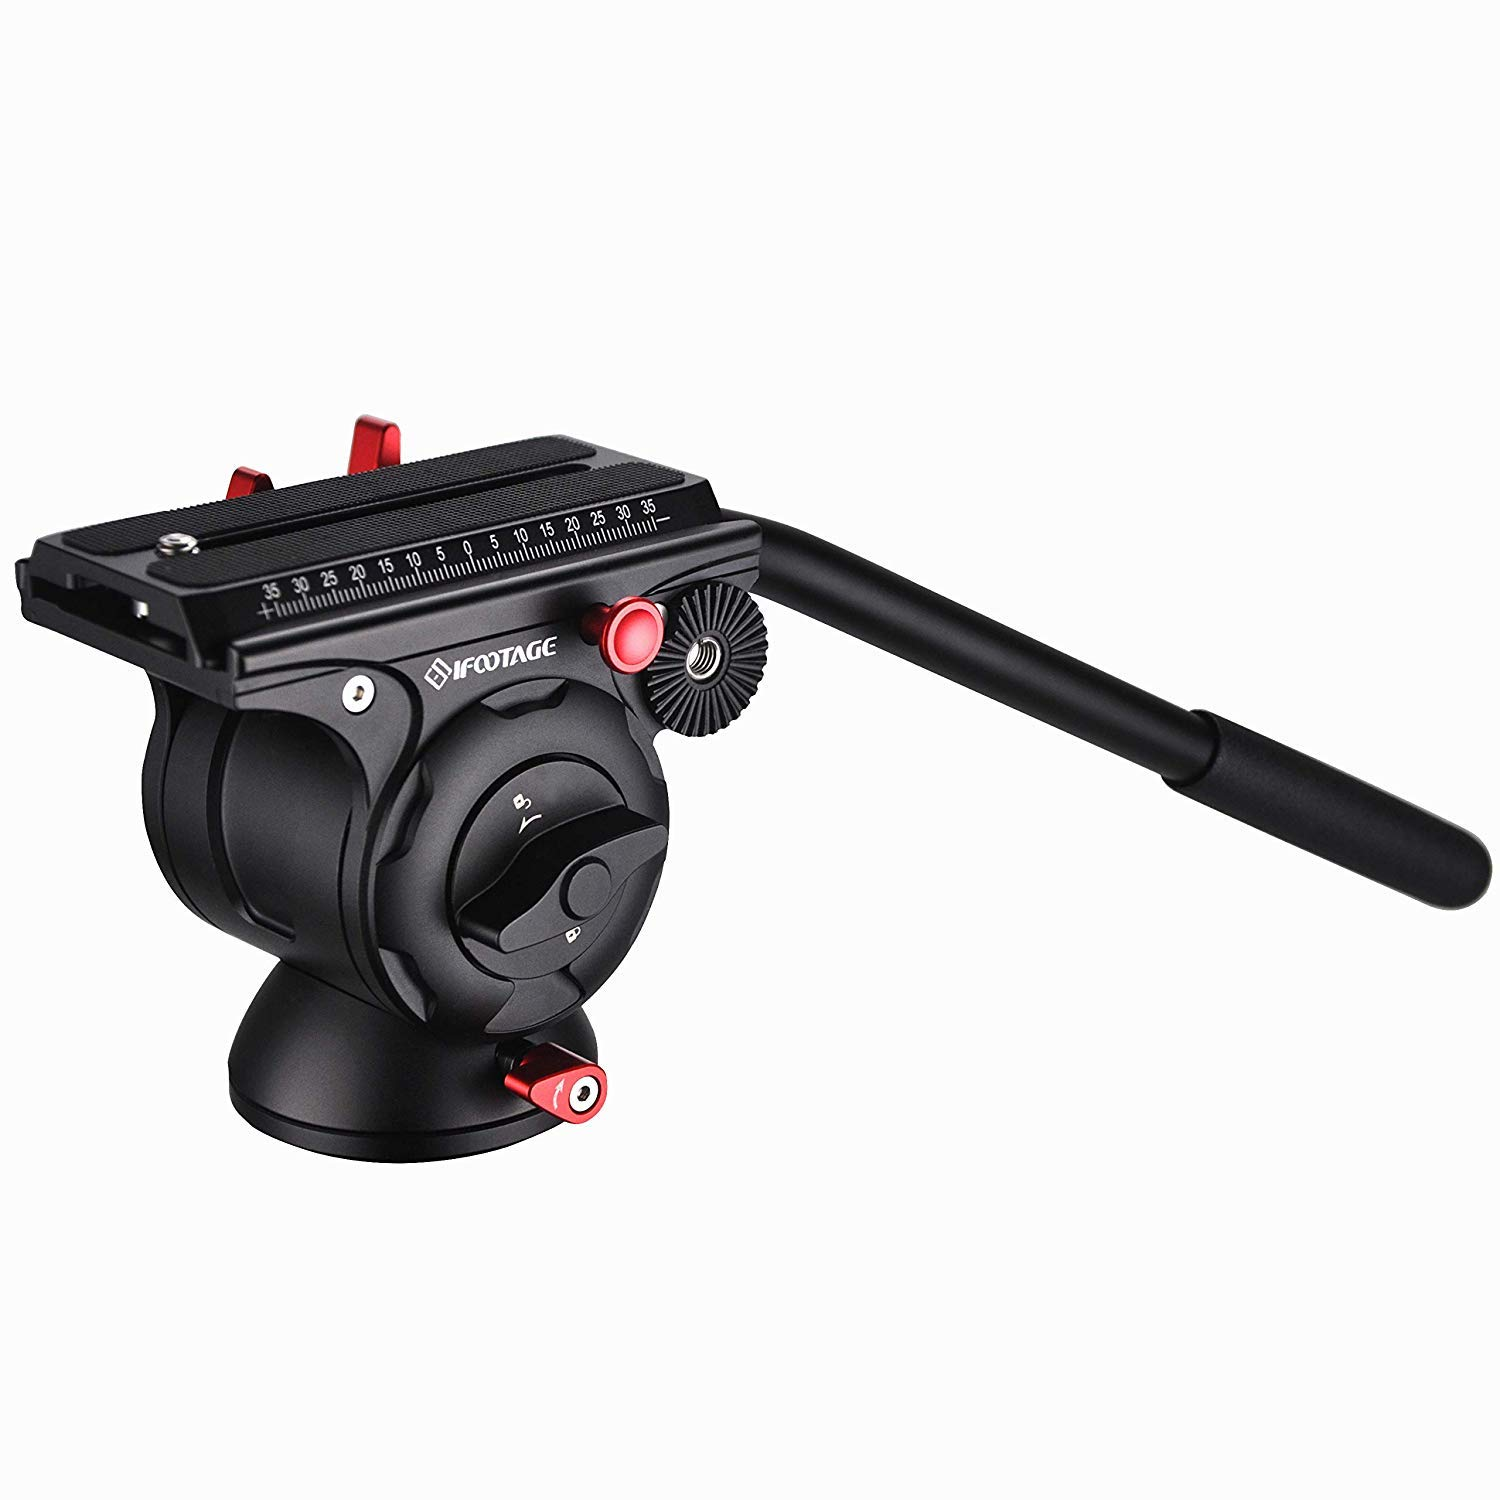 IFOOTAGE Video Tripod Head Fluid Drag Pan Head for DSLR Cameras, Camcorder, Monopod and Tripods by IFOOTAGE